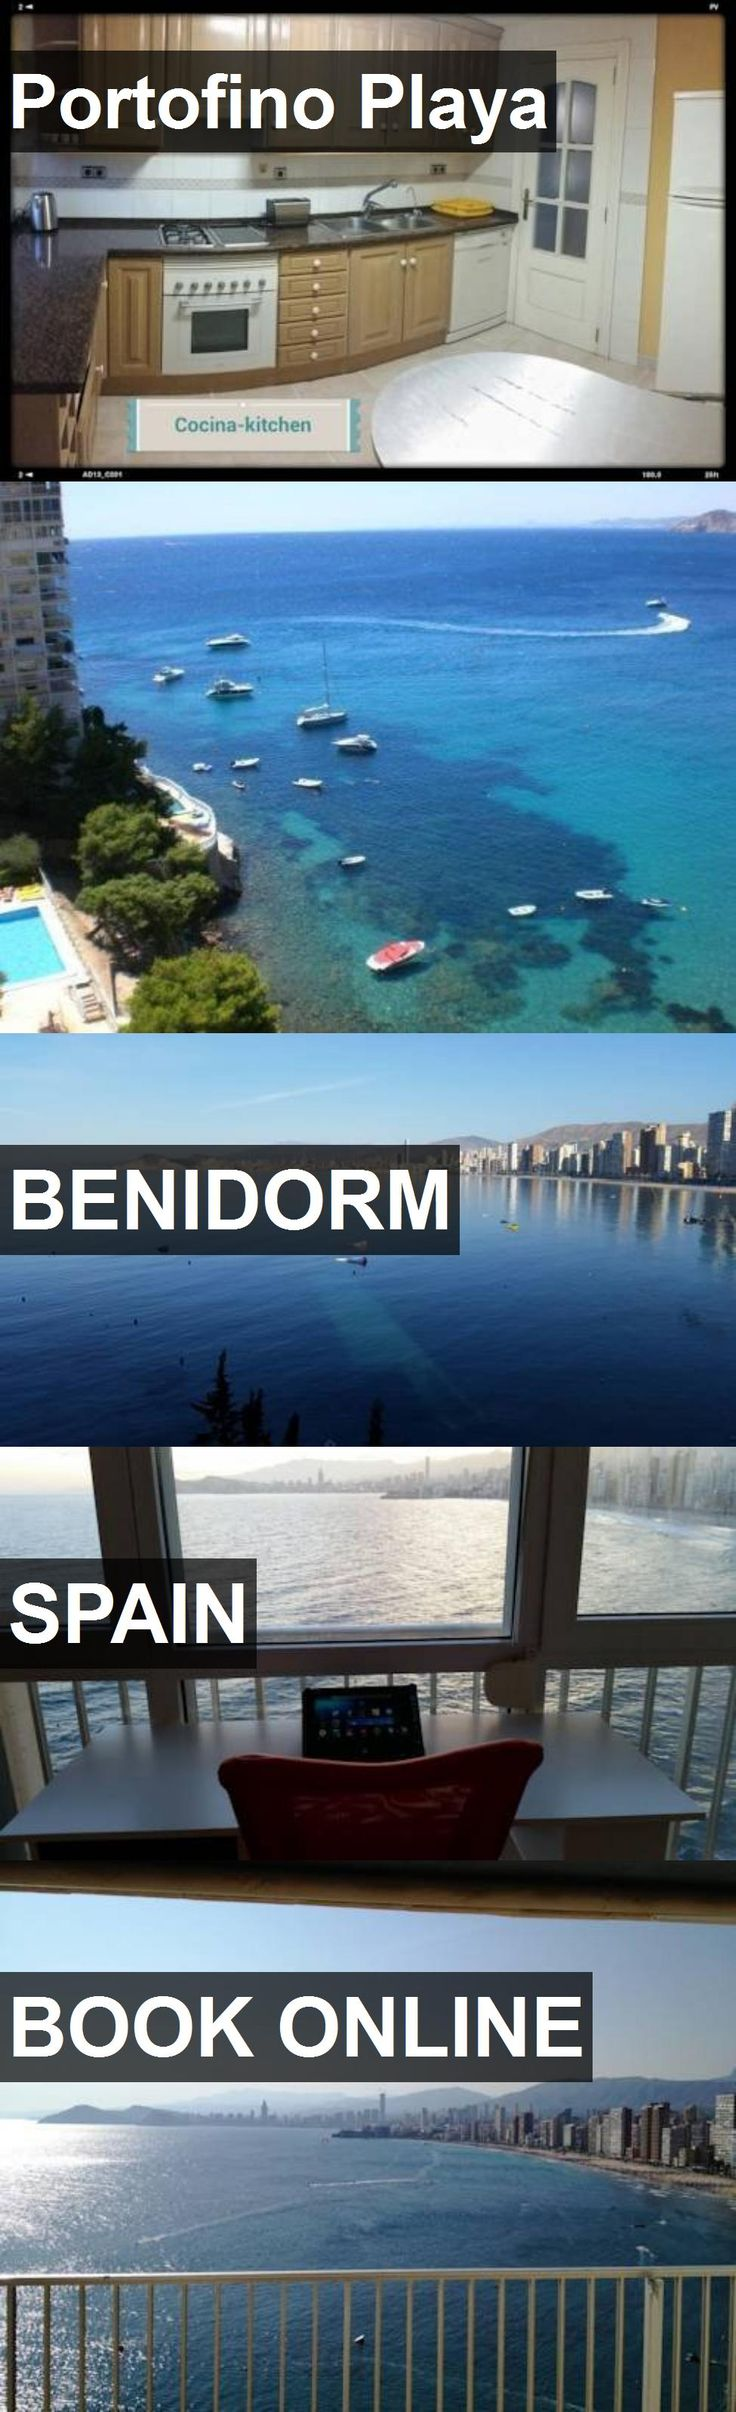 Hotel Portofino Playa in Benidorm, Spain. For more information, photos, reviews and best prices please follow the link. #Spain #Benidorm #travel #vacation #hotel